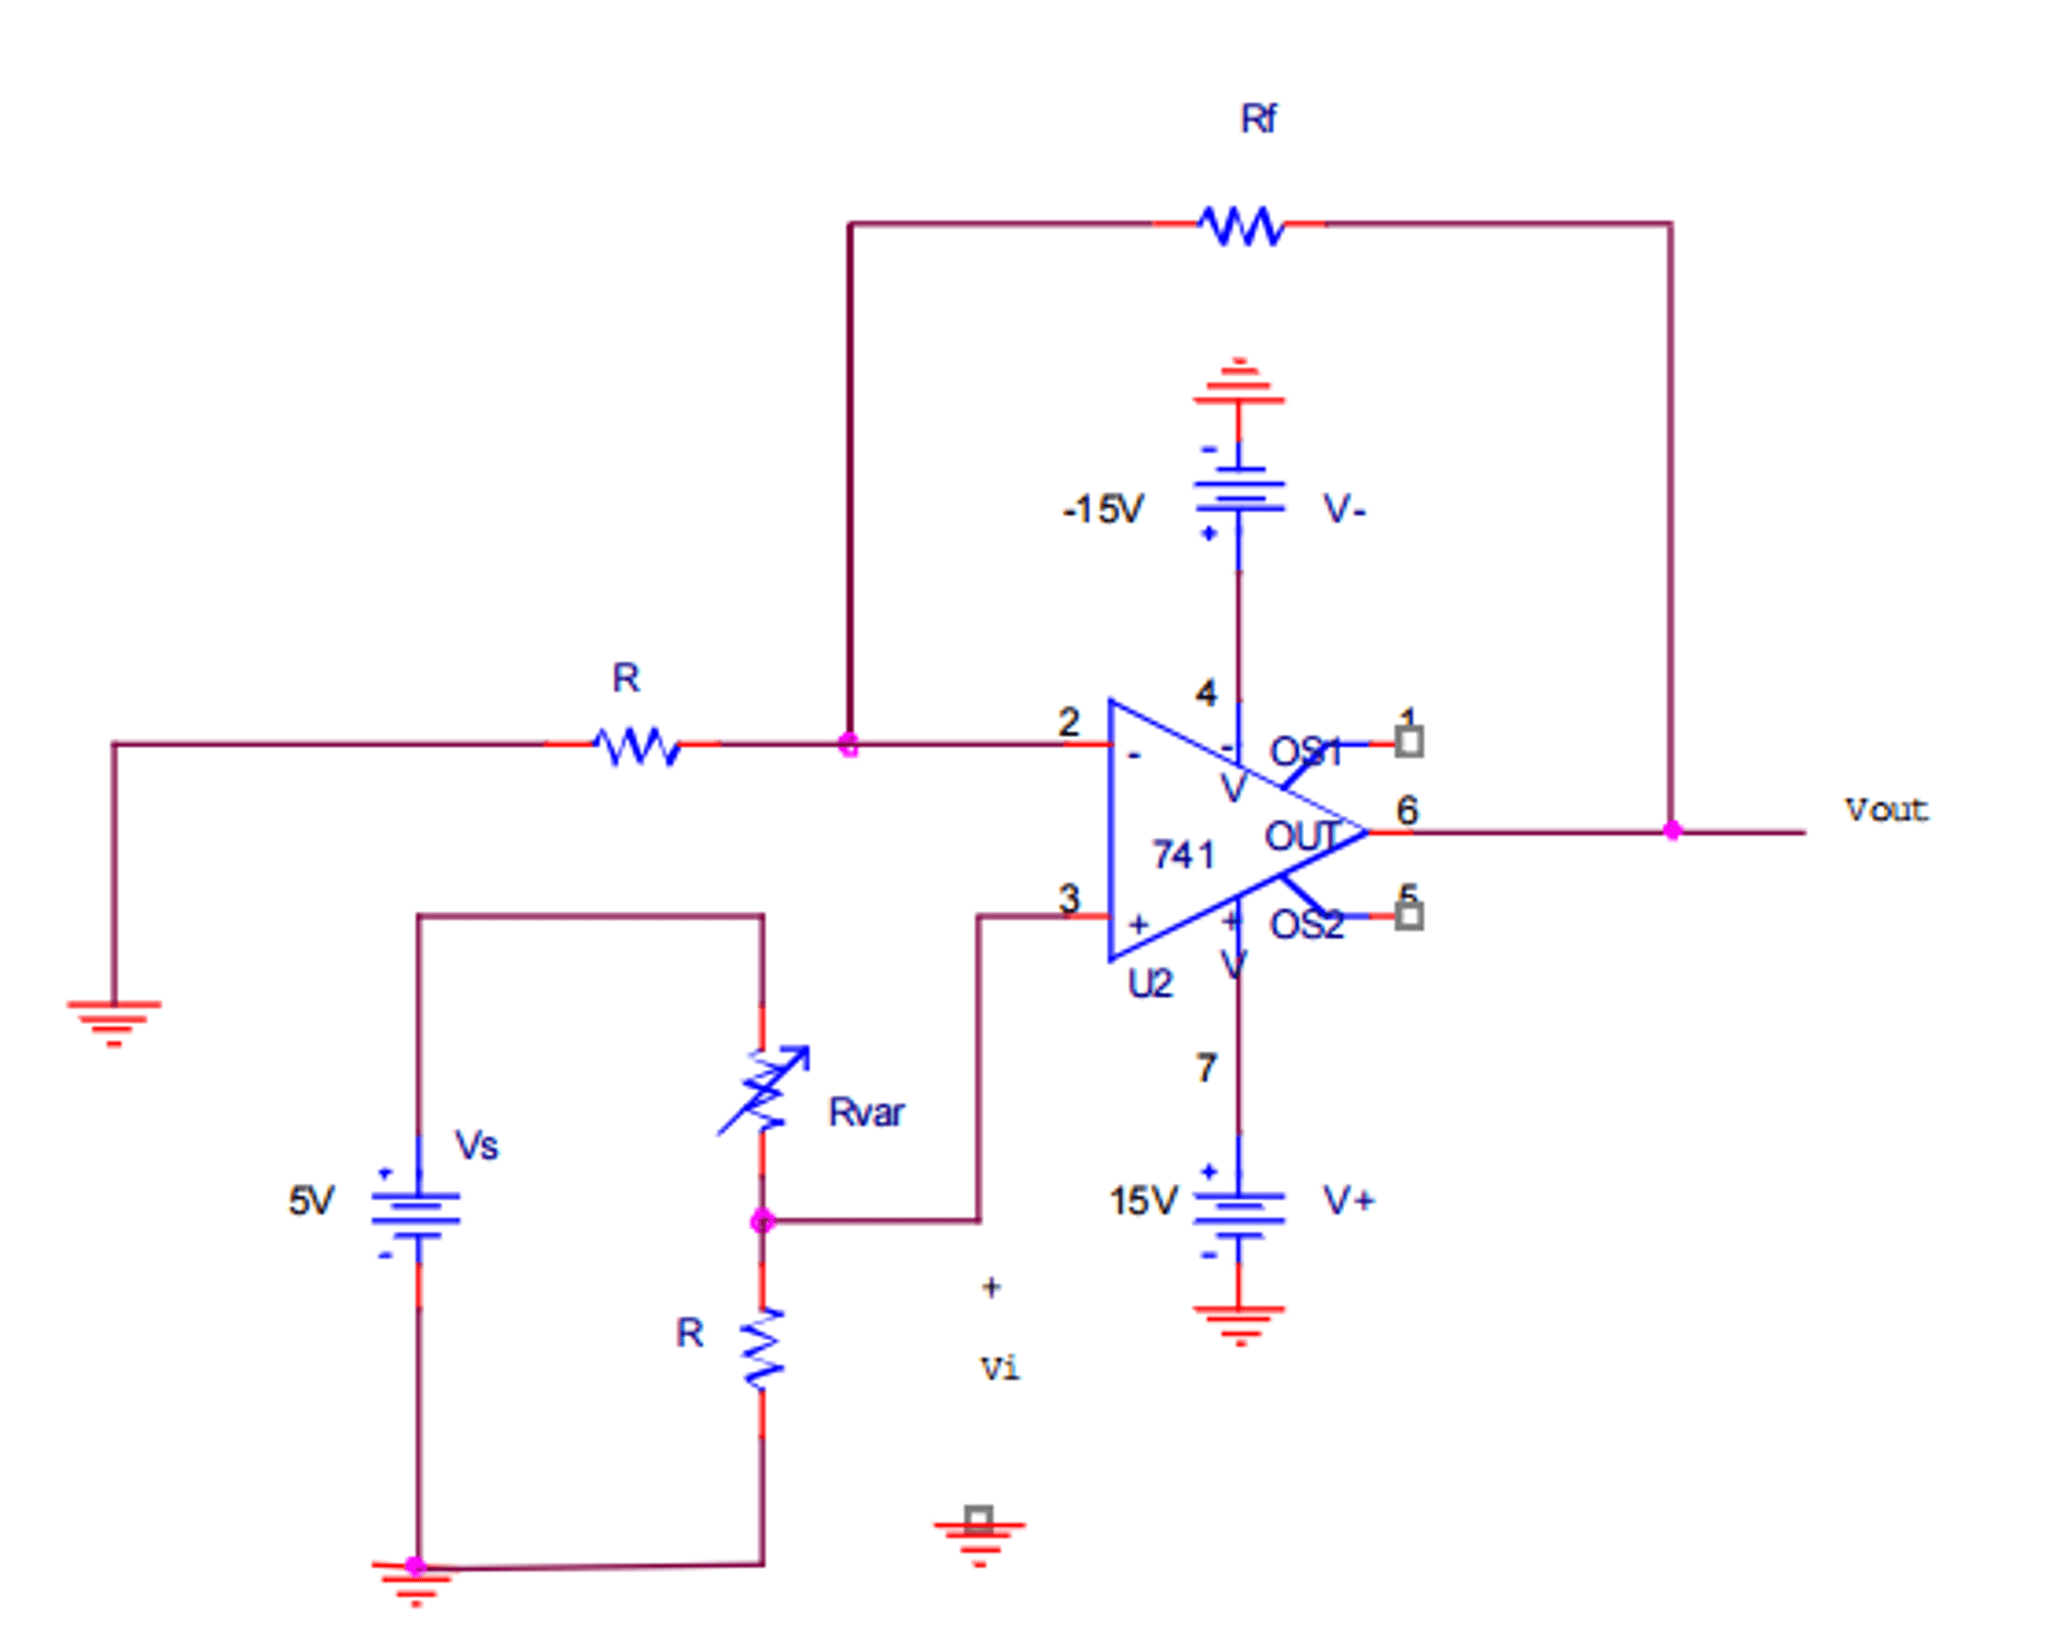 circuit diagram of non inverting amplifier psc fan motor wiring 4 1 experiment fig 7 o